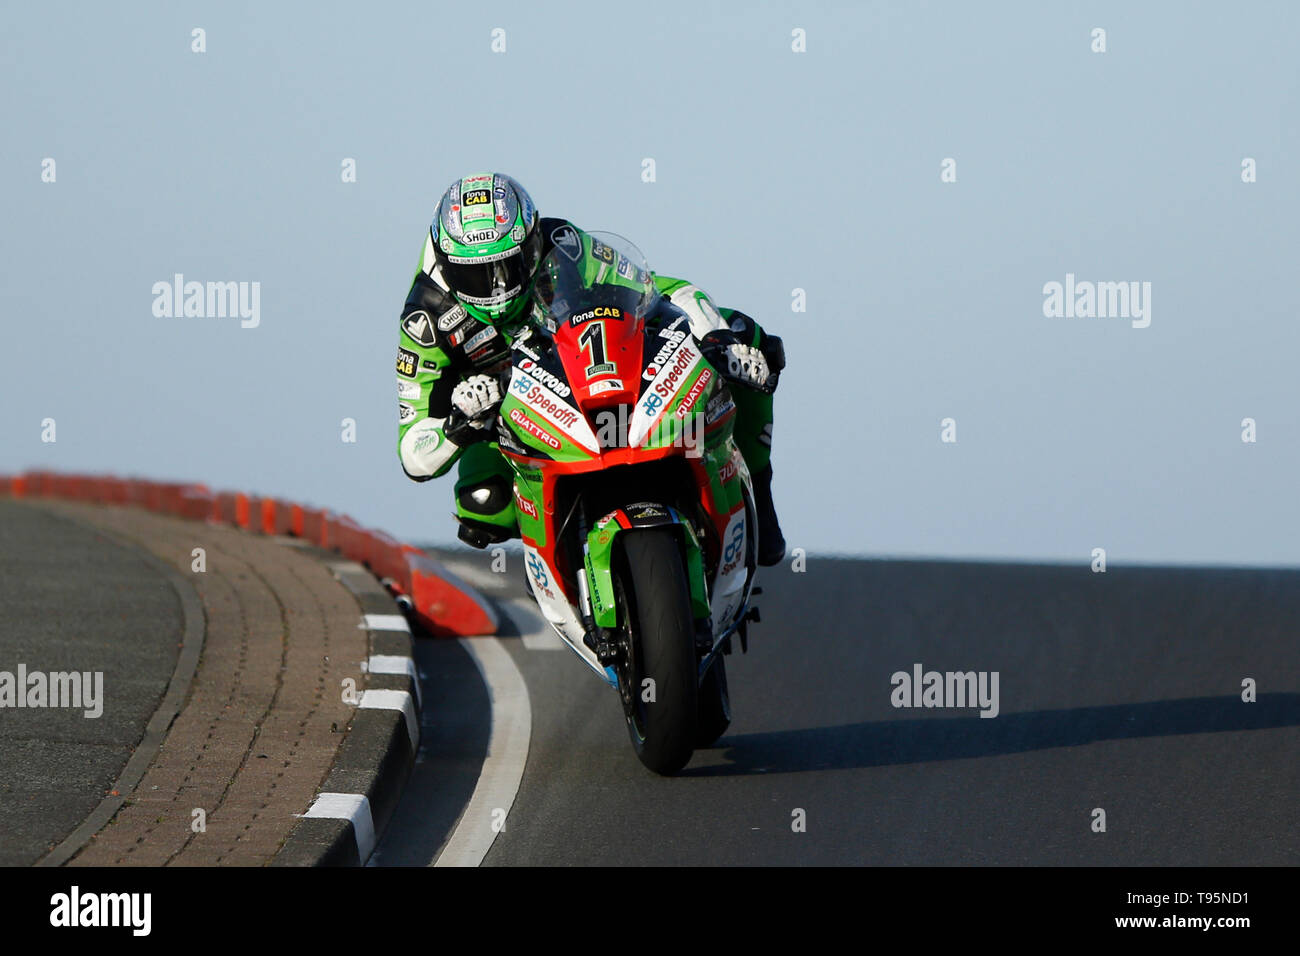 Portrush, Northern Ireland. 16th May, 2019. International North West 200 Motorcycle road racing, Thursday practice and evening racing; Glenn Irwin (Quattro Plant Wicked Coatings Kawasaki) takes second place in the SuperStock race Credit: Action Plus Sports/Alamy Live News - Stock Image